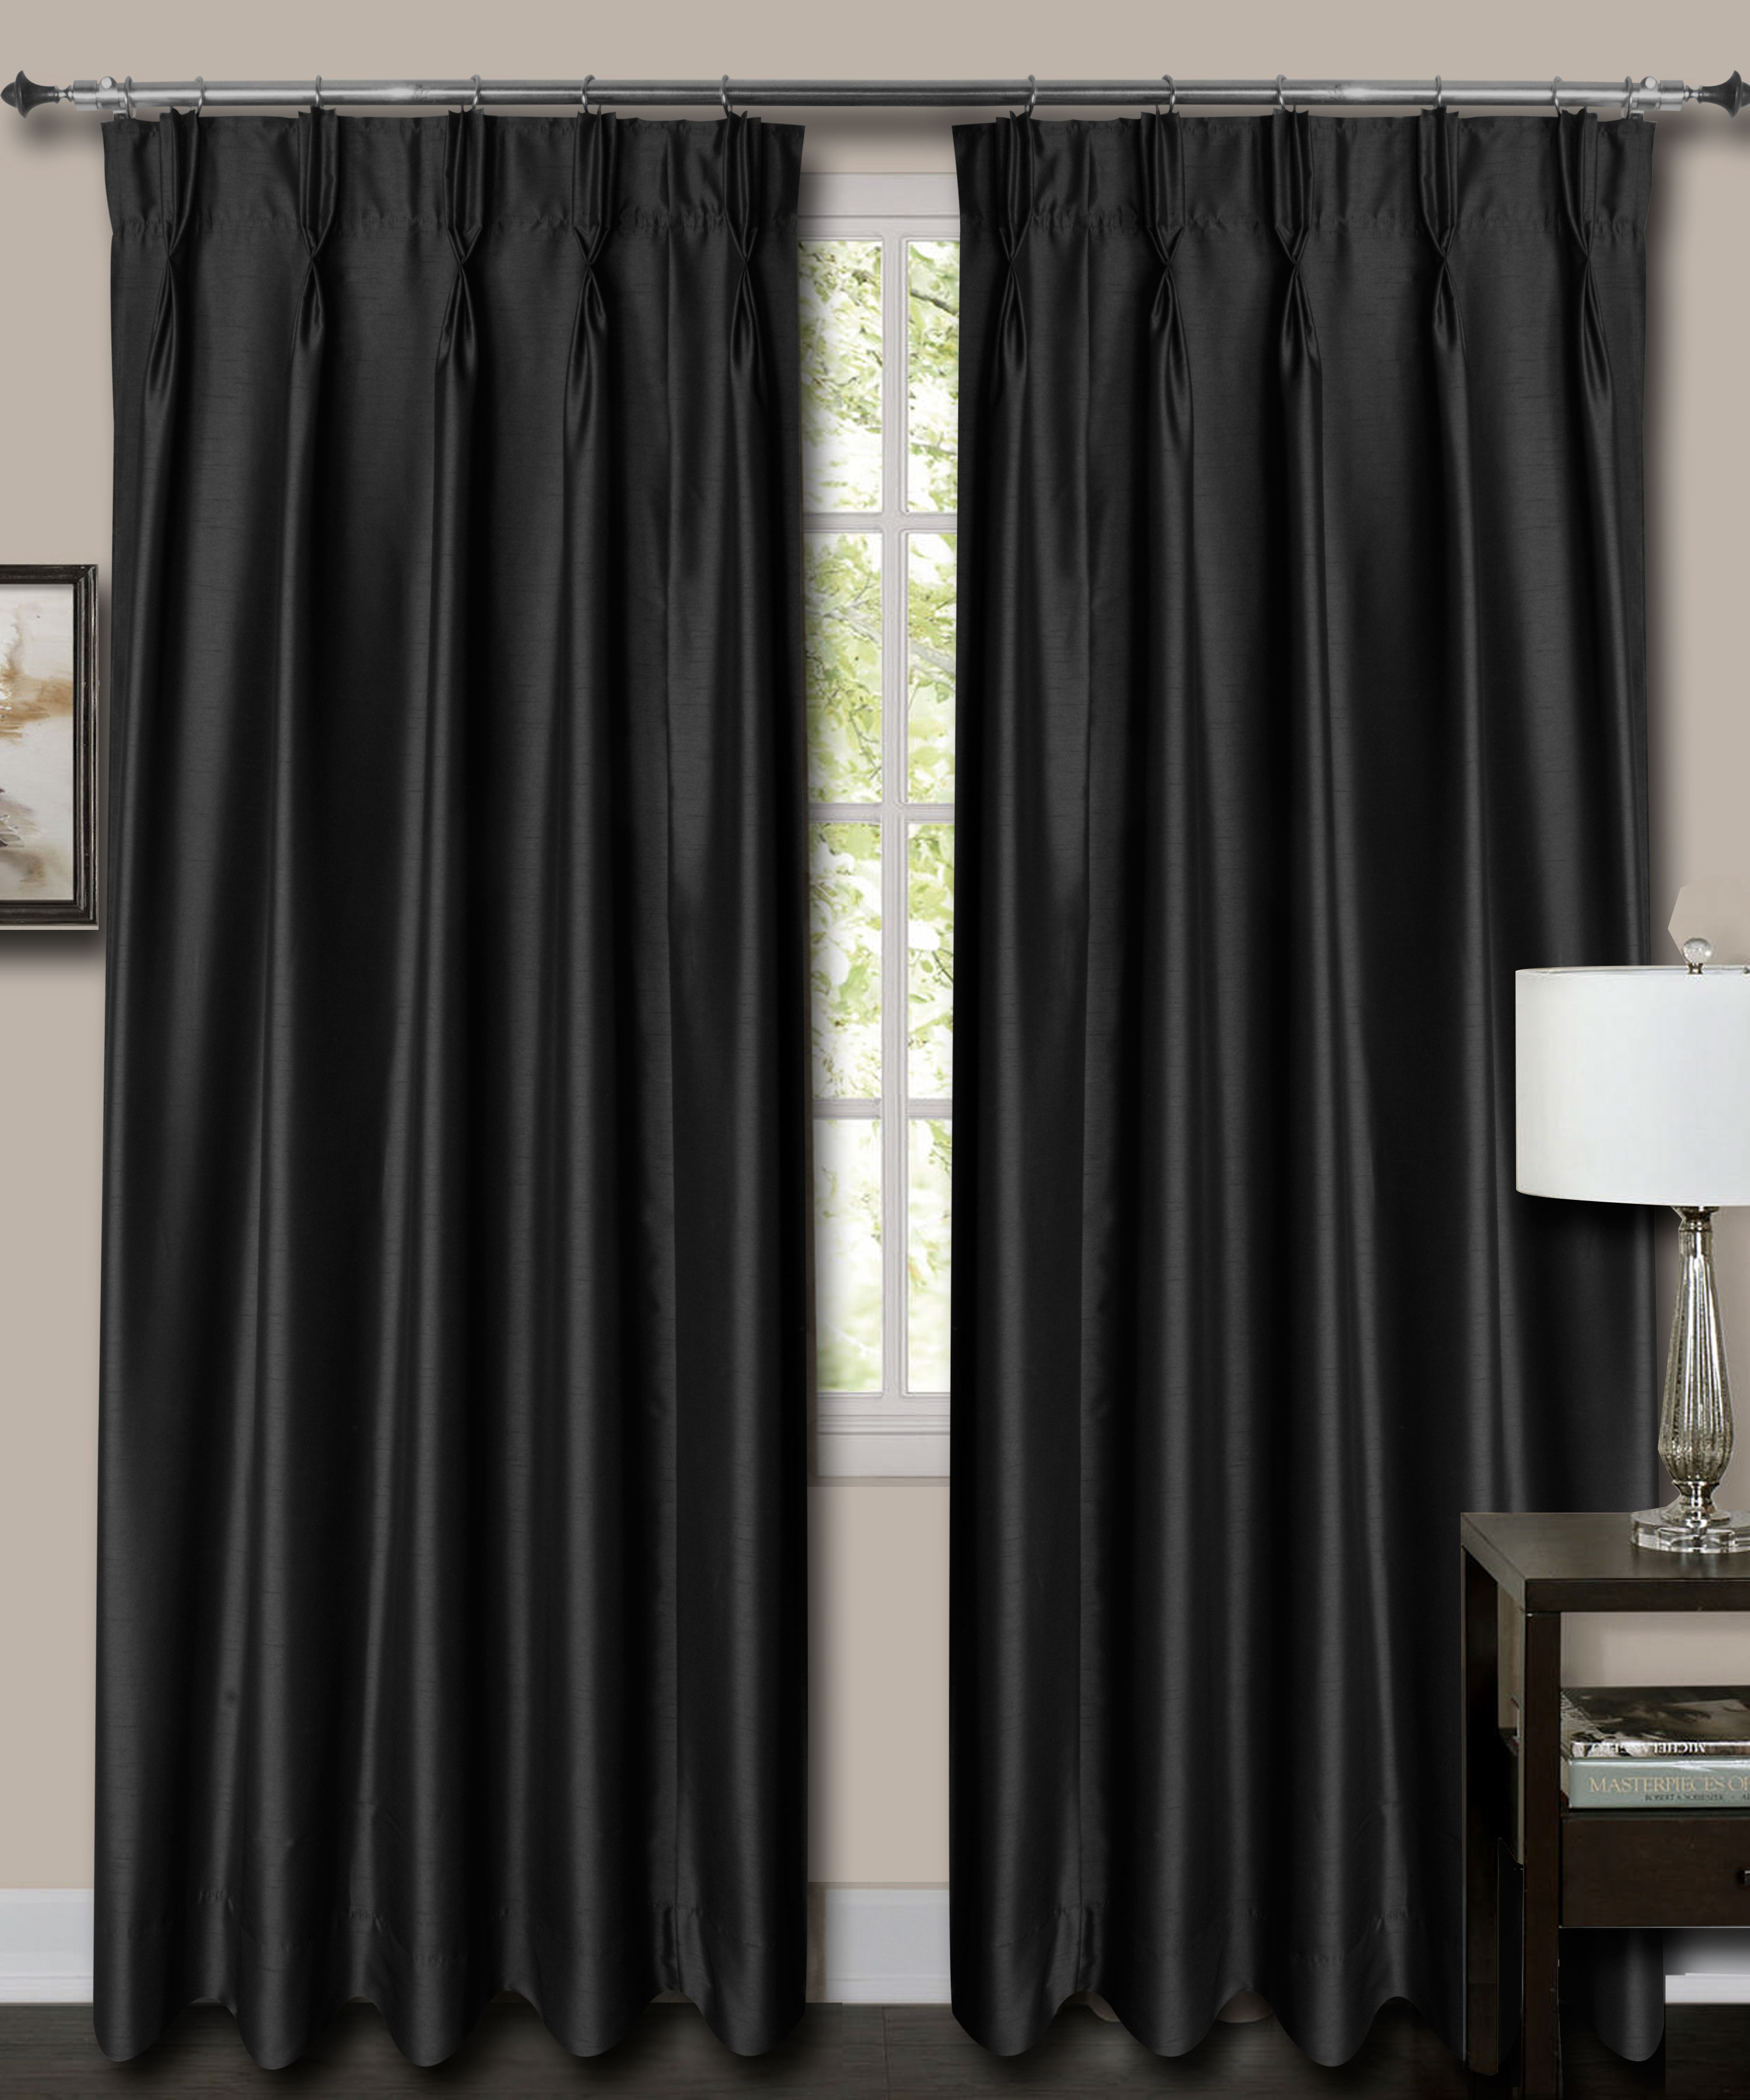 "French Pleat Top Black Faux Silk Dupioni Curtains. (39"" Wide, 6 Feet Long, Thick Lining)"